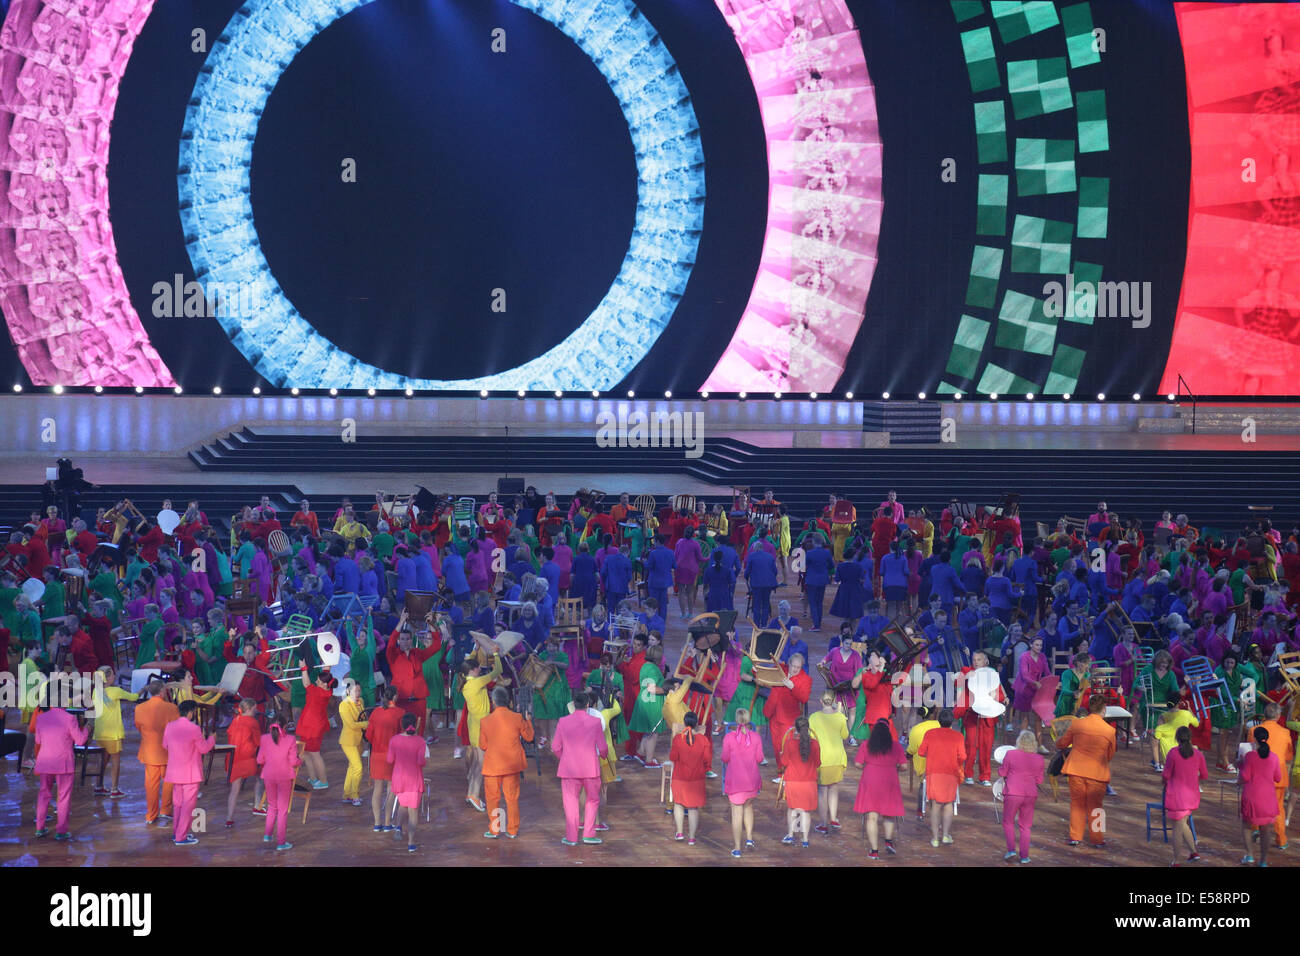 Glasgow, Scotland, UK. 23rd July, 2014. Dancers performing at the Glasgow 2014 Commonwealth Games Opening Ceremony Stock Photo